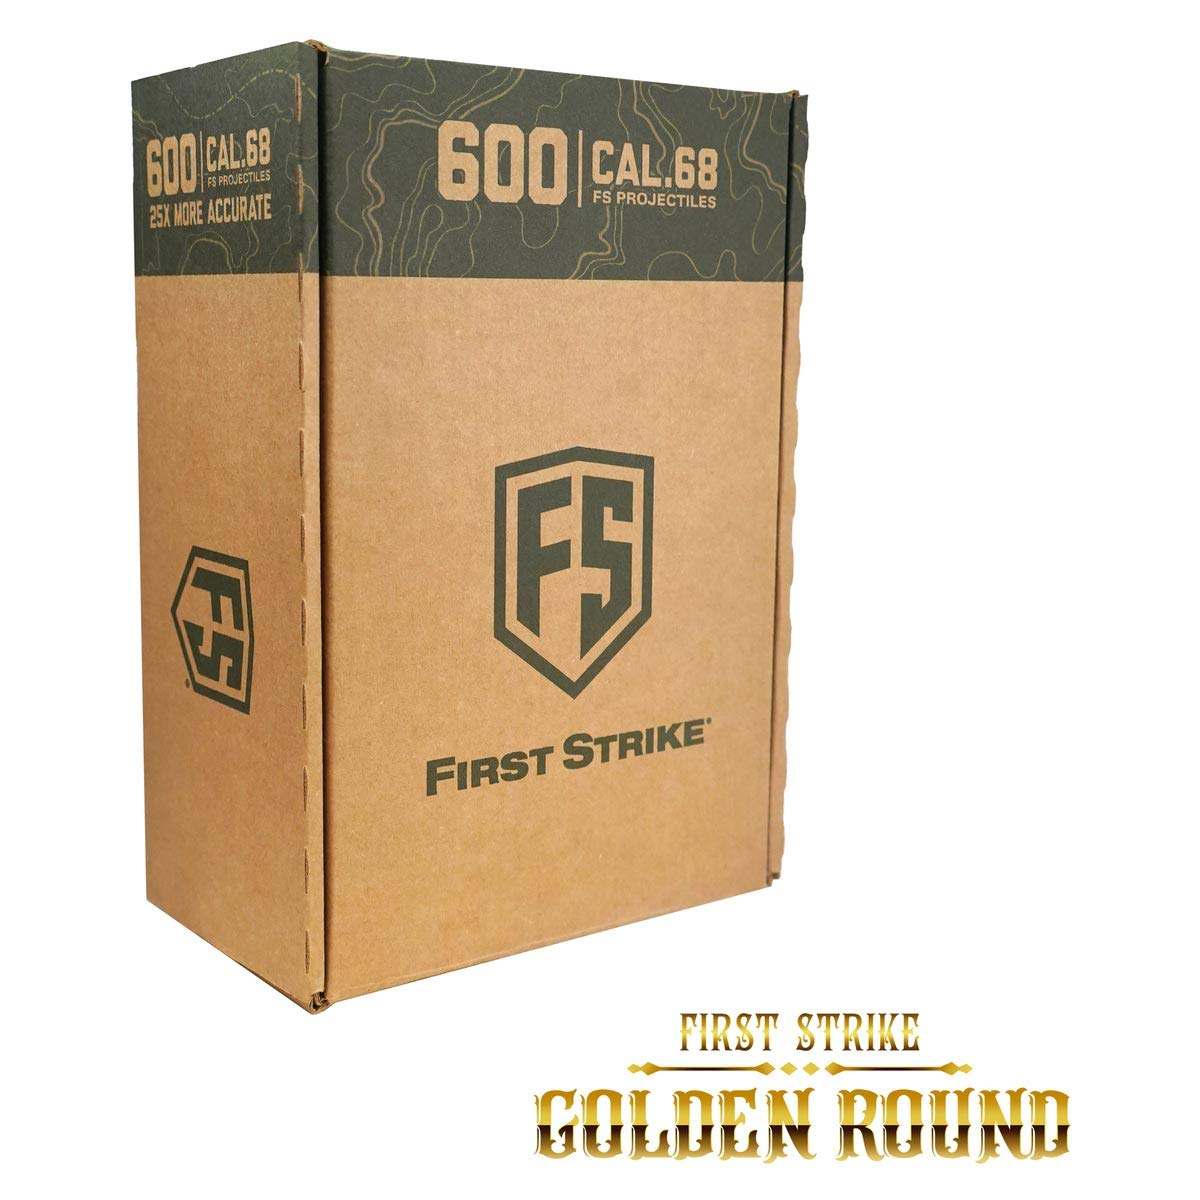 First Strike Paintball Rounds - Yellow/Smoke Shell - Yellow Fill - 600 Count - Gold Round Box